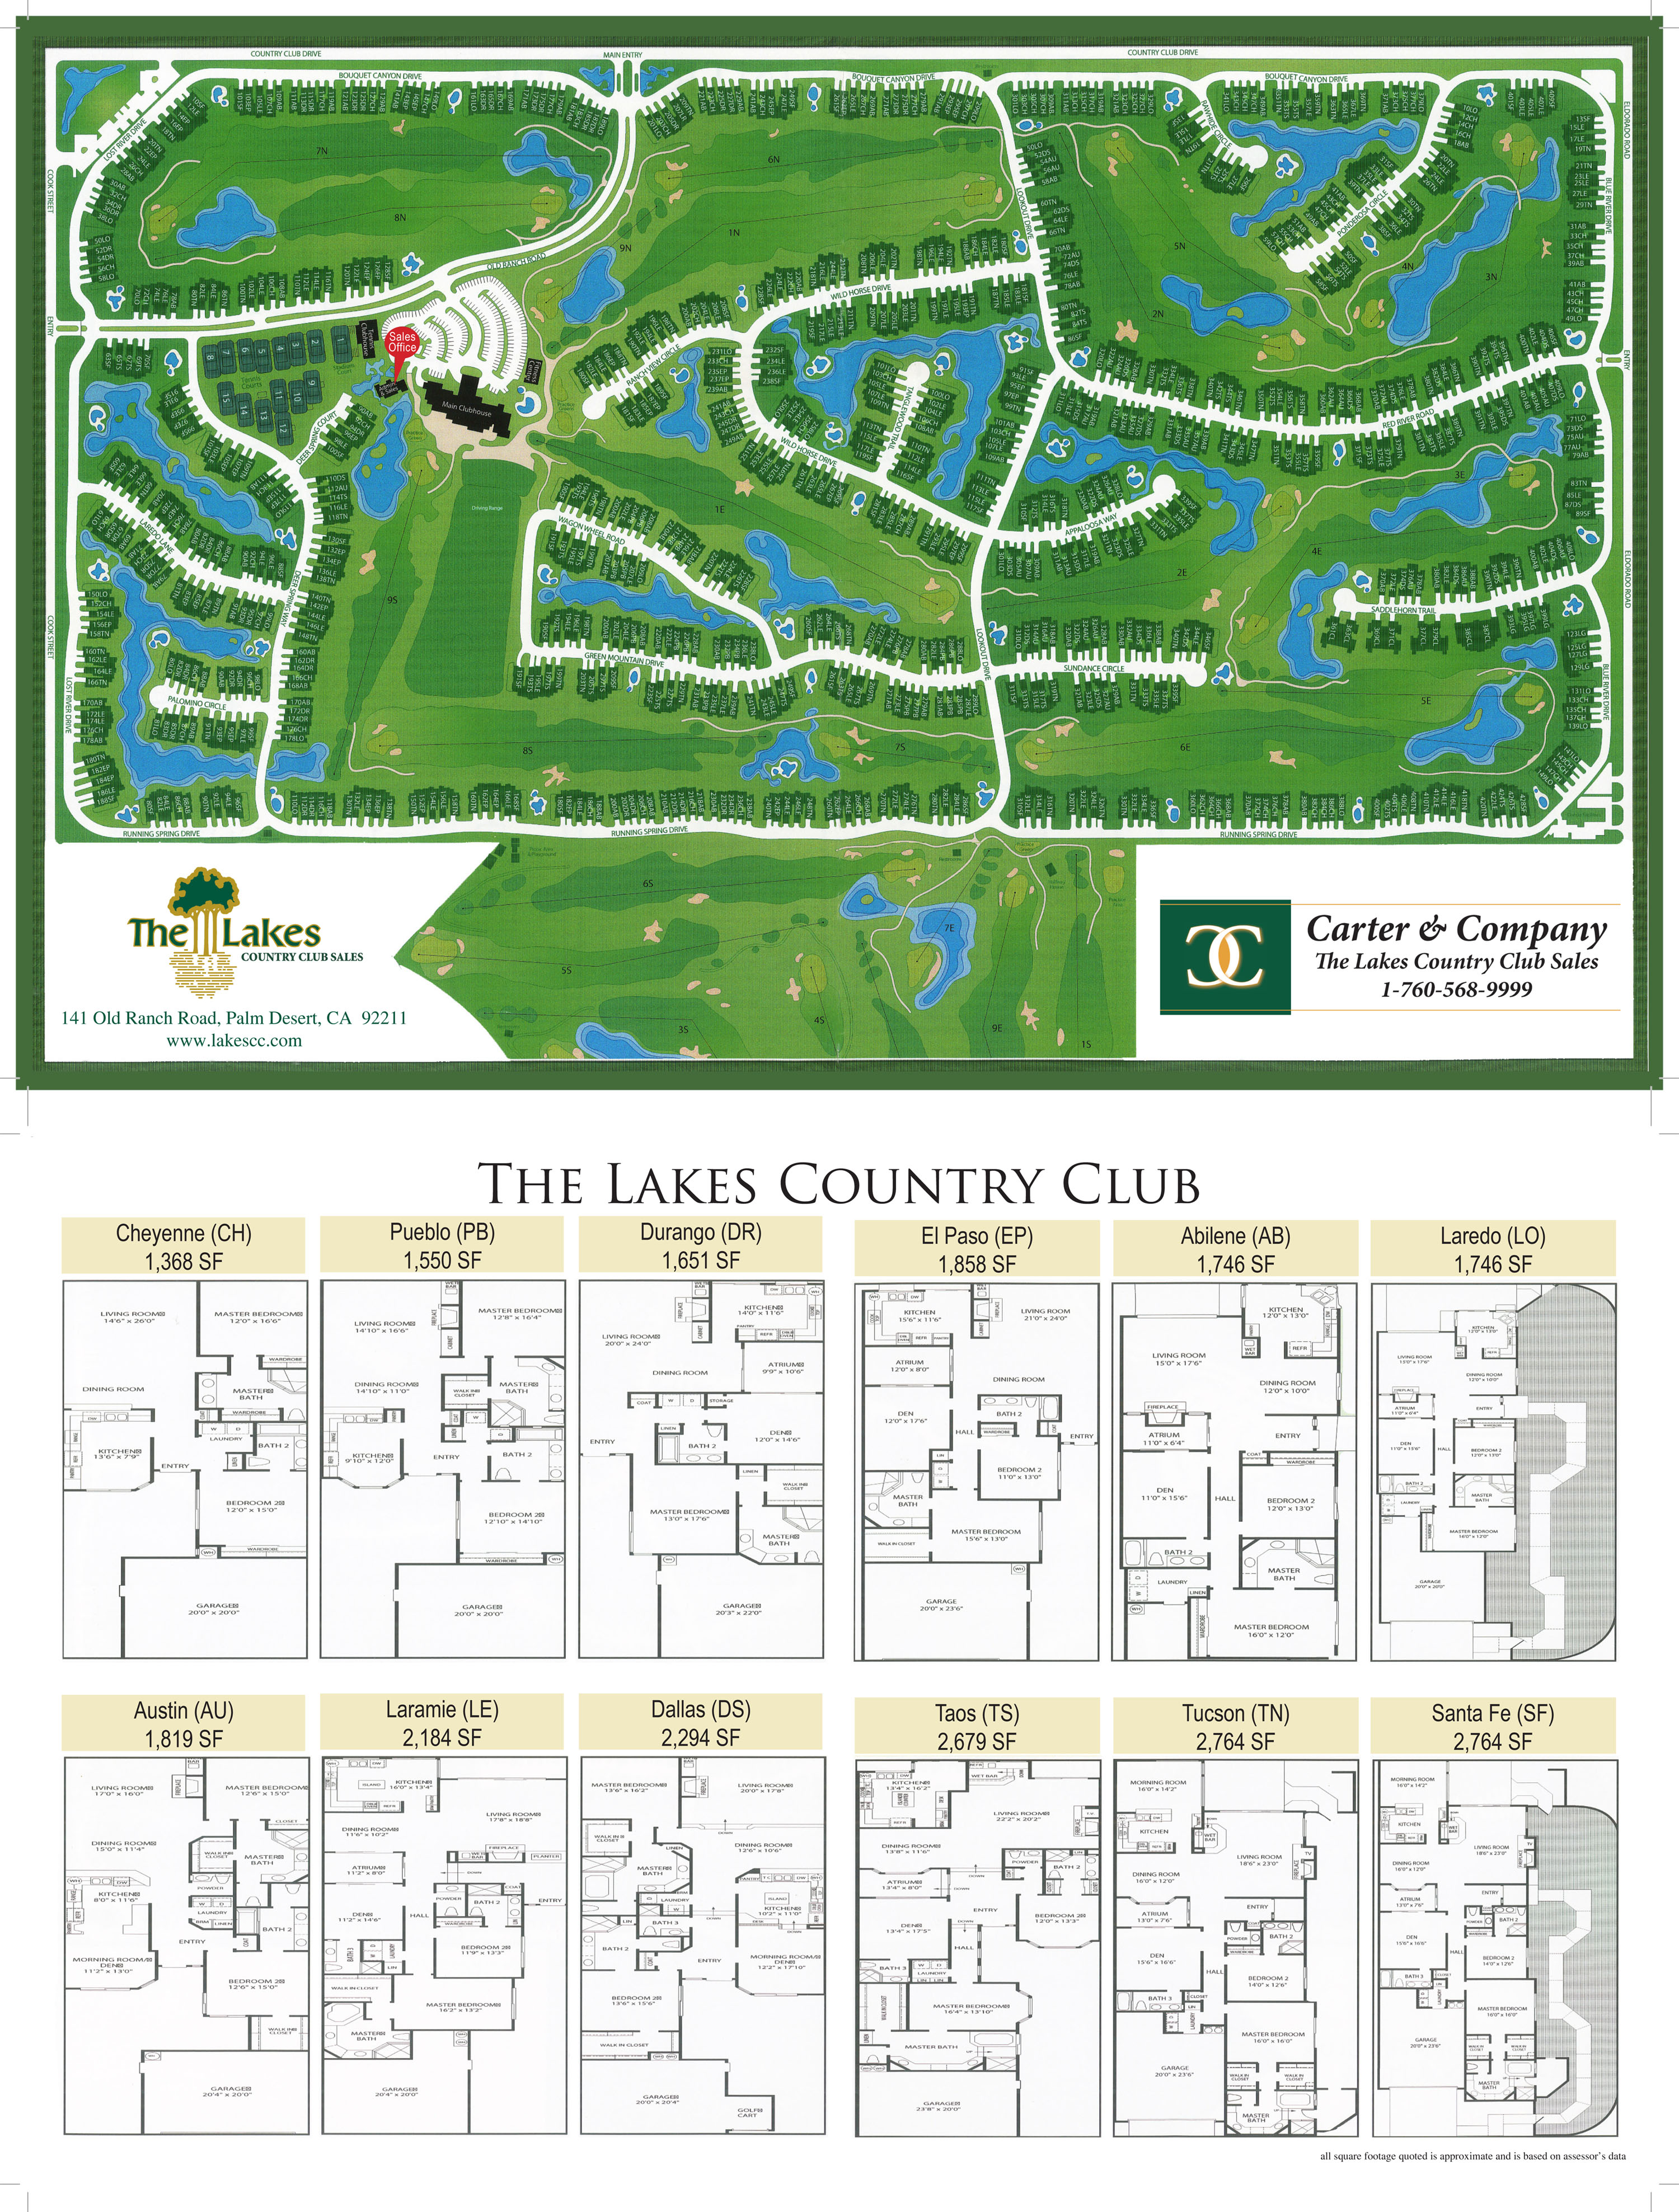 Map Of The Lakes Country Club The Lakes Country Club Homes For Sale